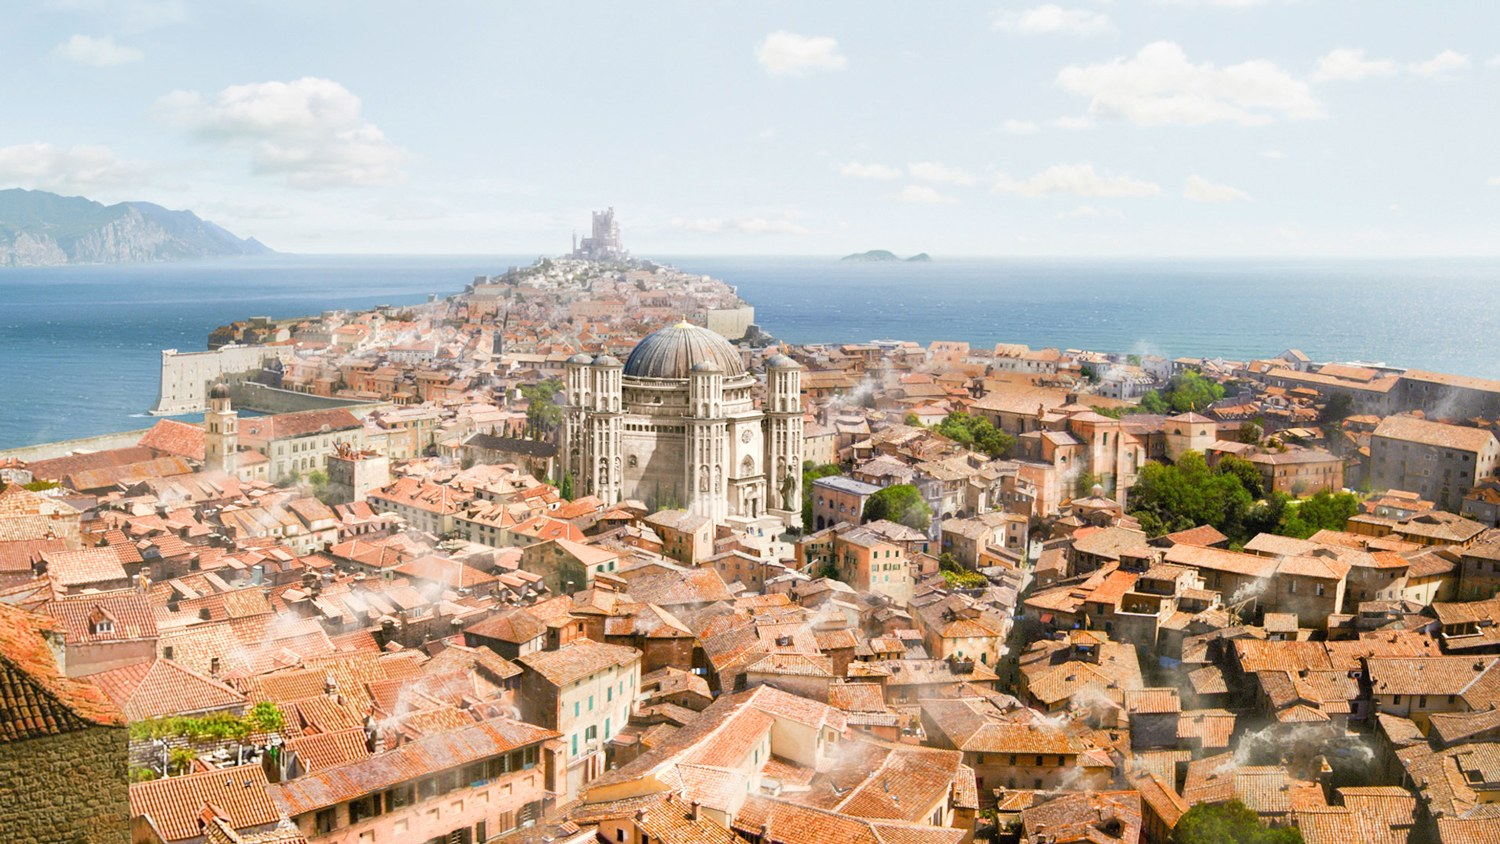 Game of Thrones Tour - turquoise ocean and sandy city walls of Dubrovnik, Croatia